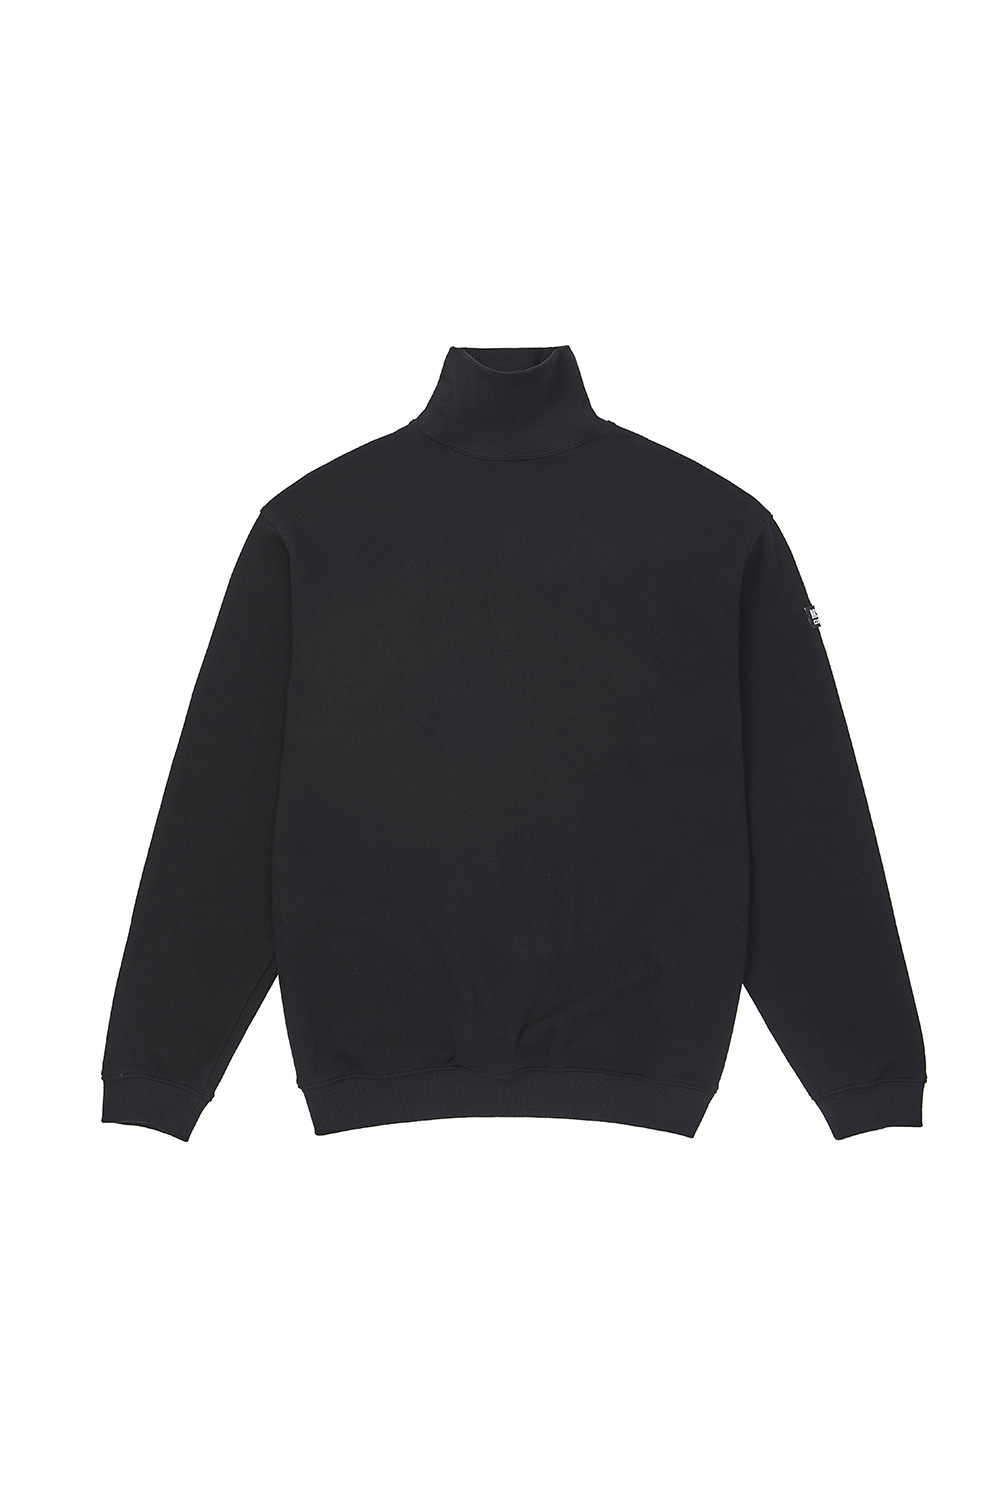 TURTLENECK SWEATER_black